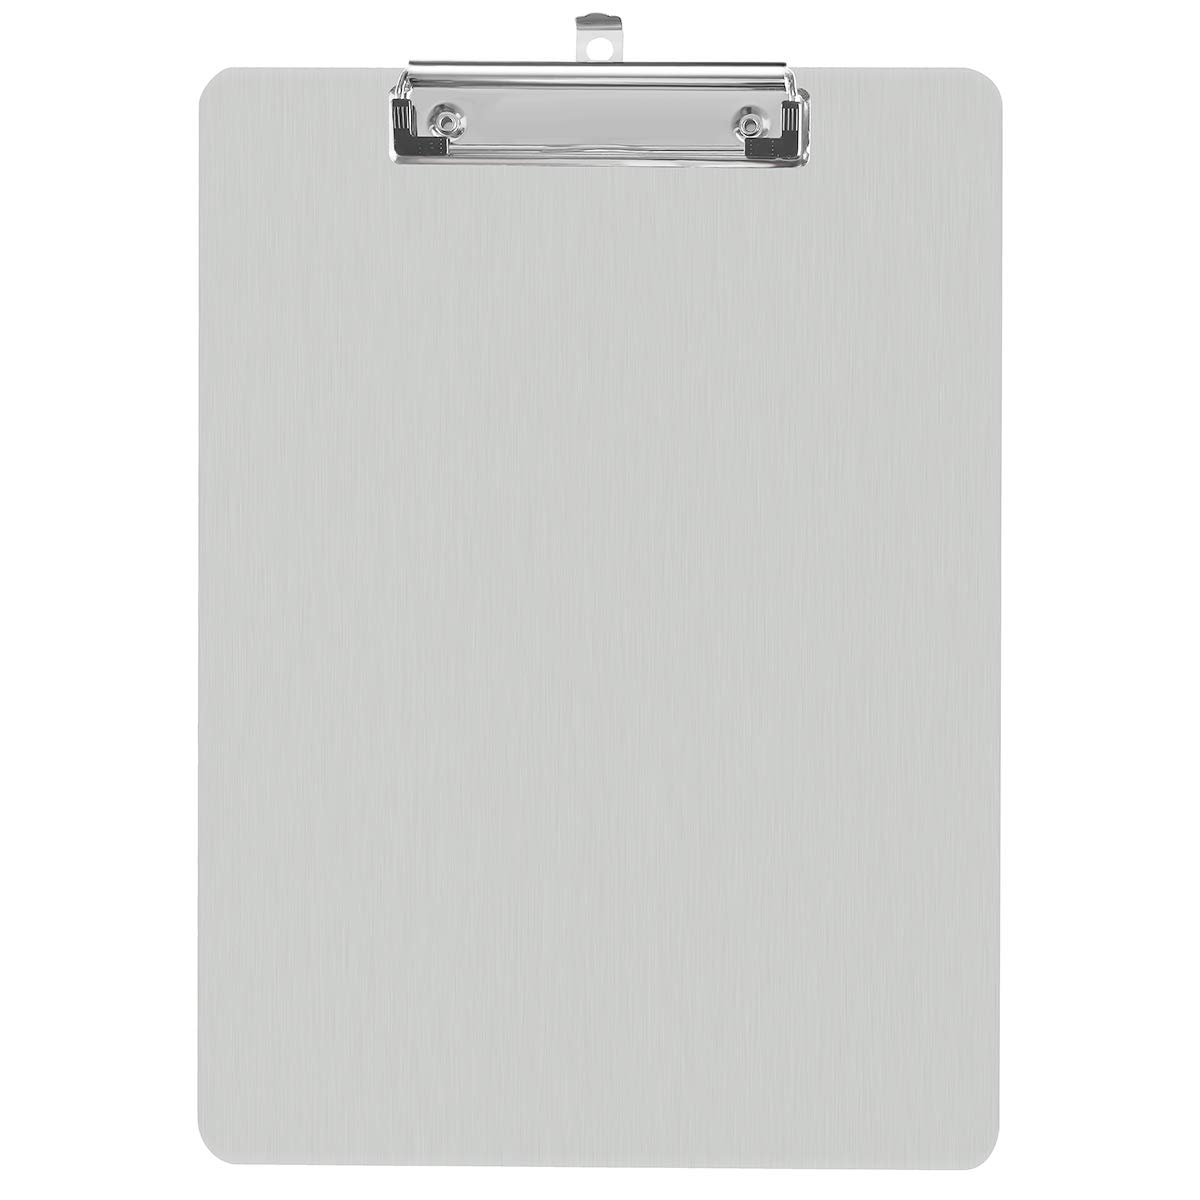 Aluminum Clipboard Paper Holder Steel Metal Clipboard - 9x12.5 Letter Size, File A4 Binder Holder for Office School Worker Business